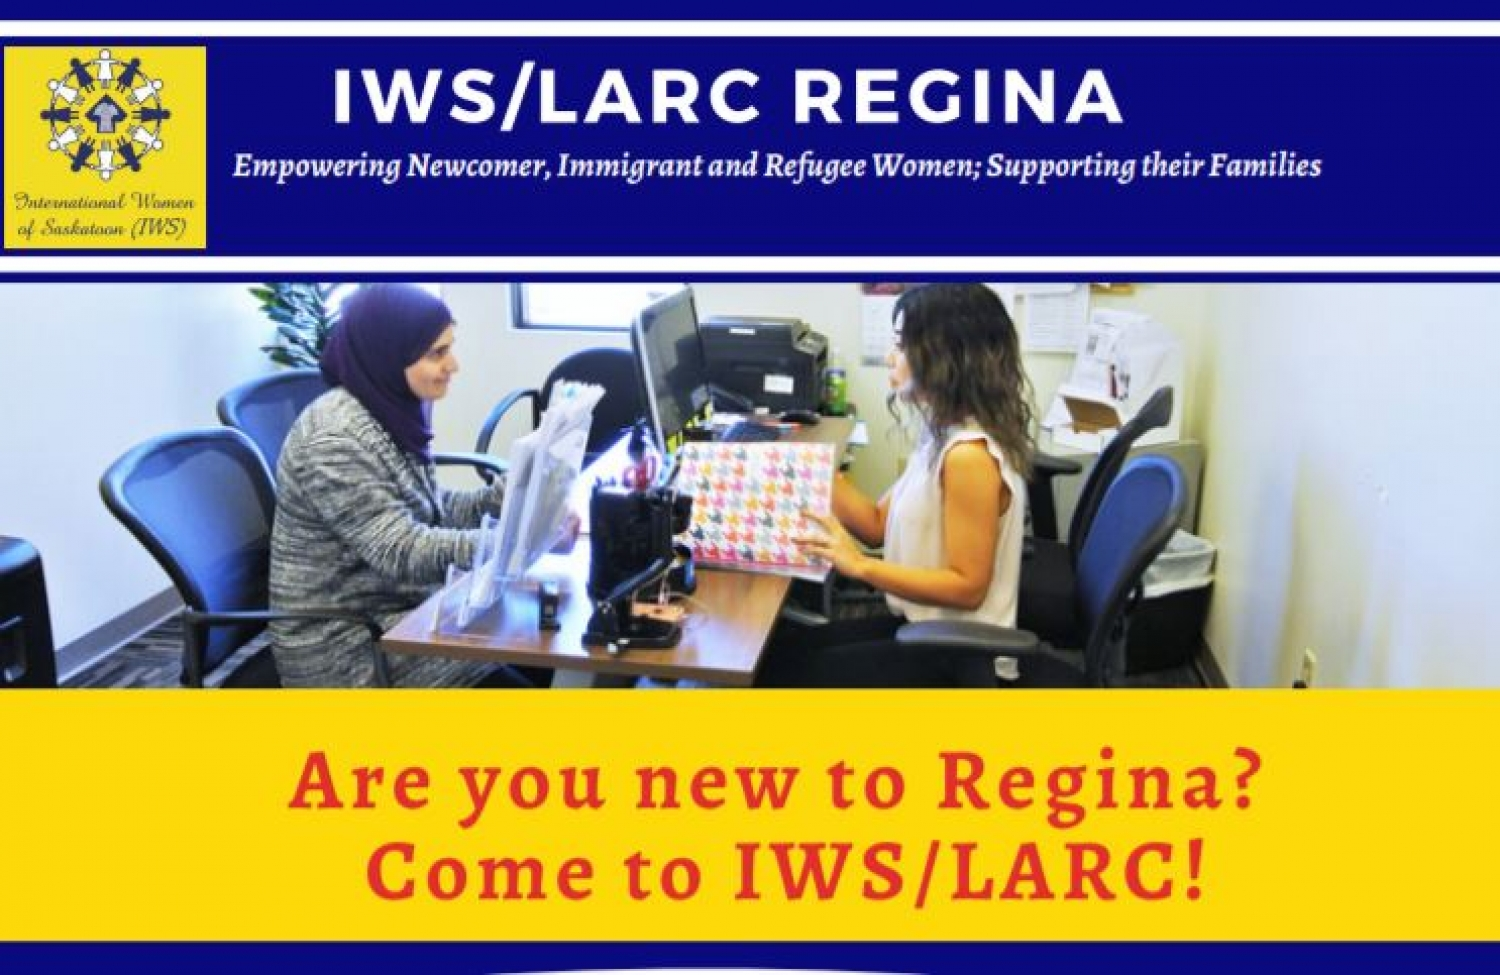 IWS/LARC Services in Regina